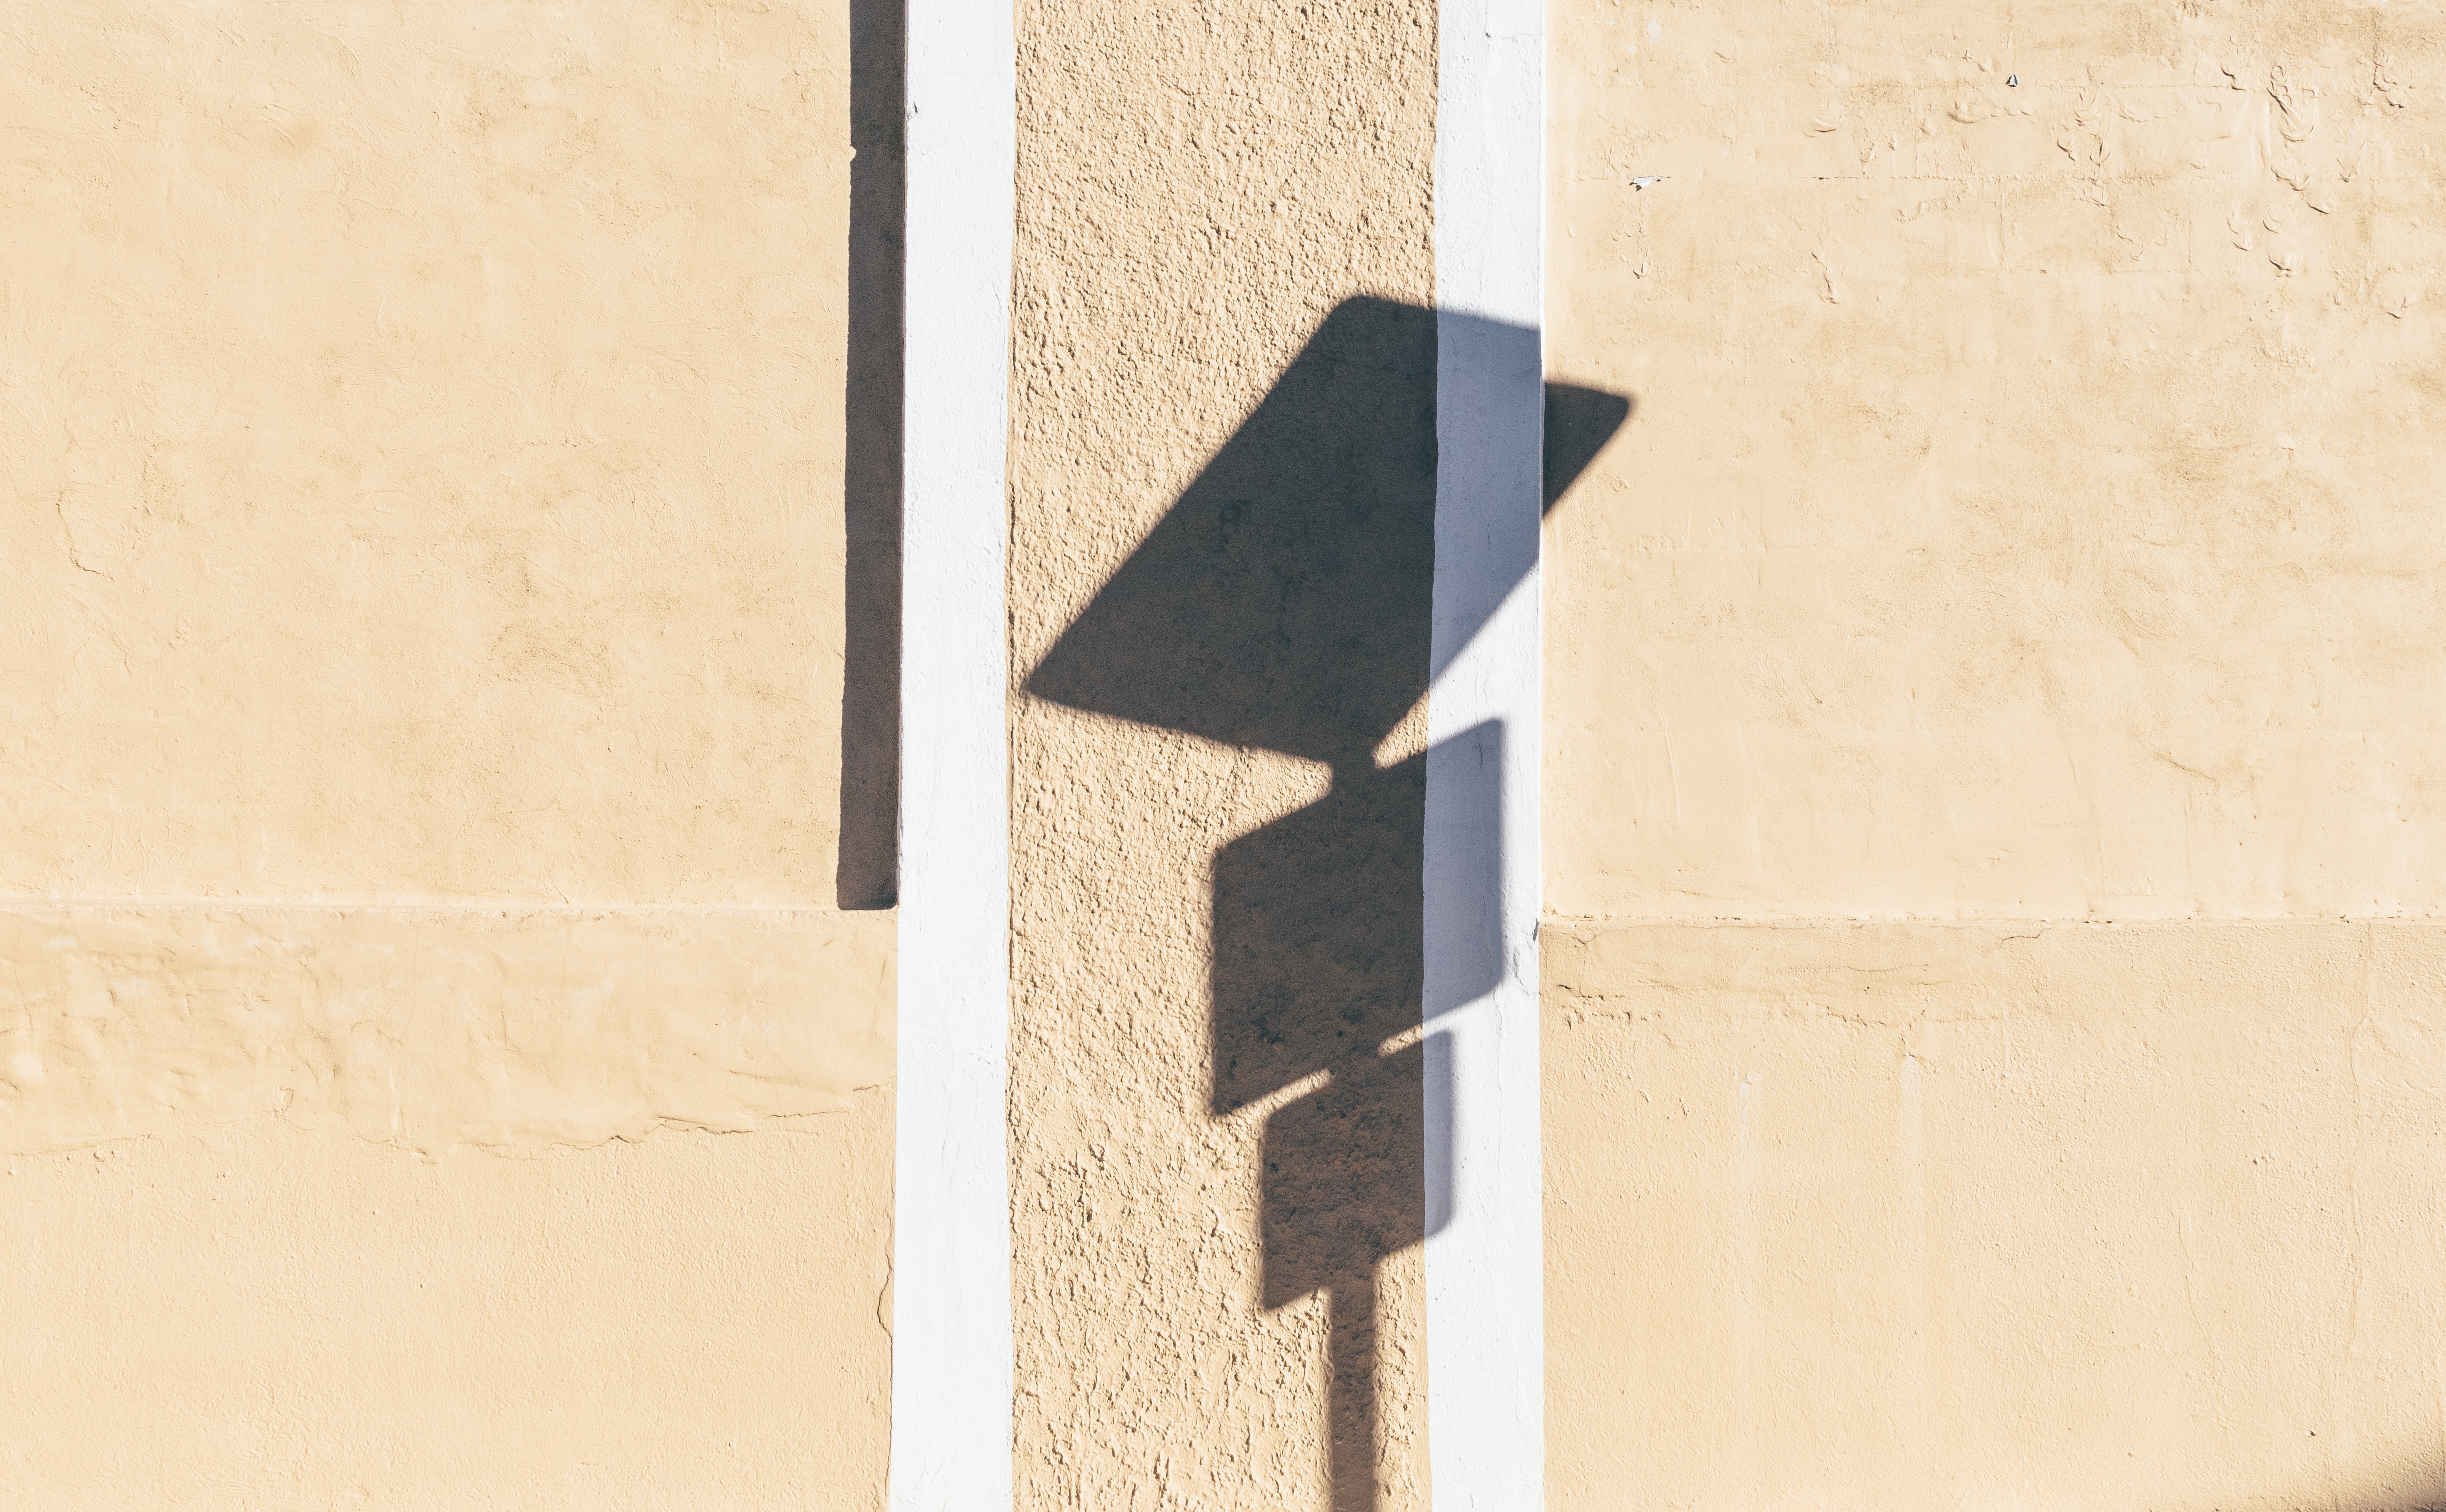 photo of signage shadow on wall